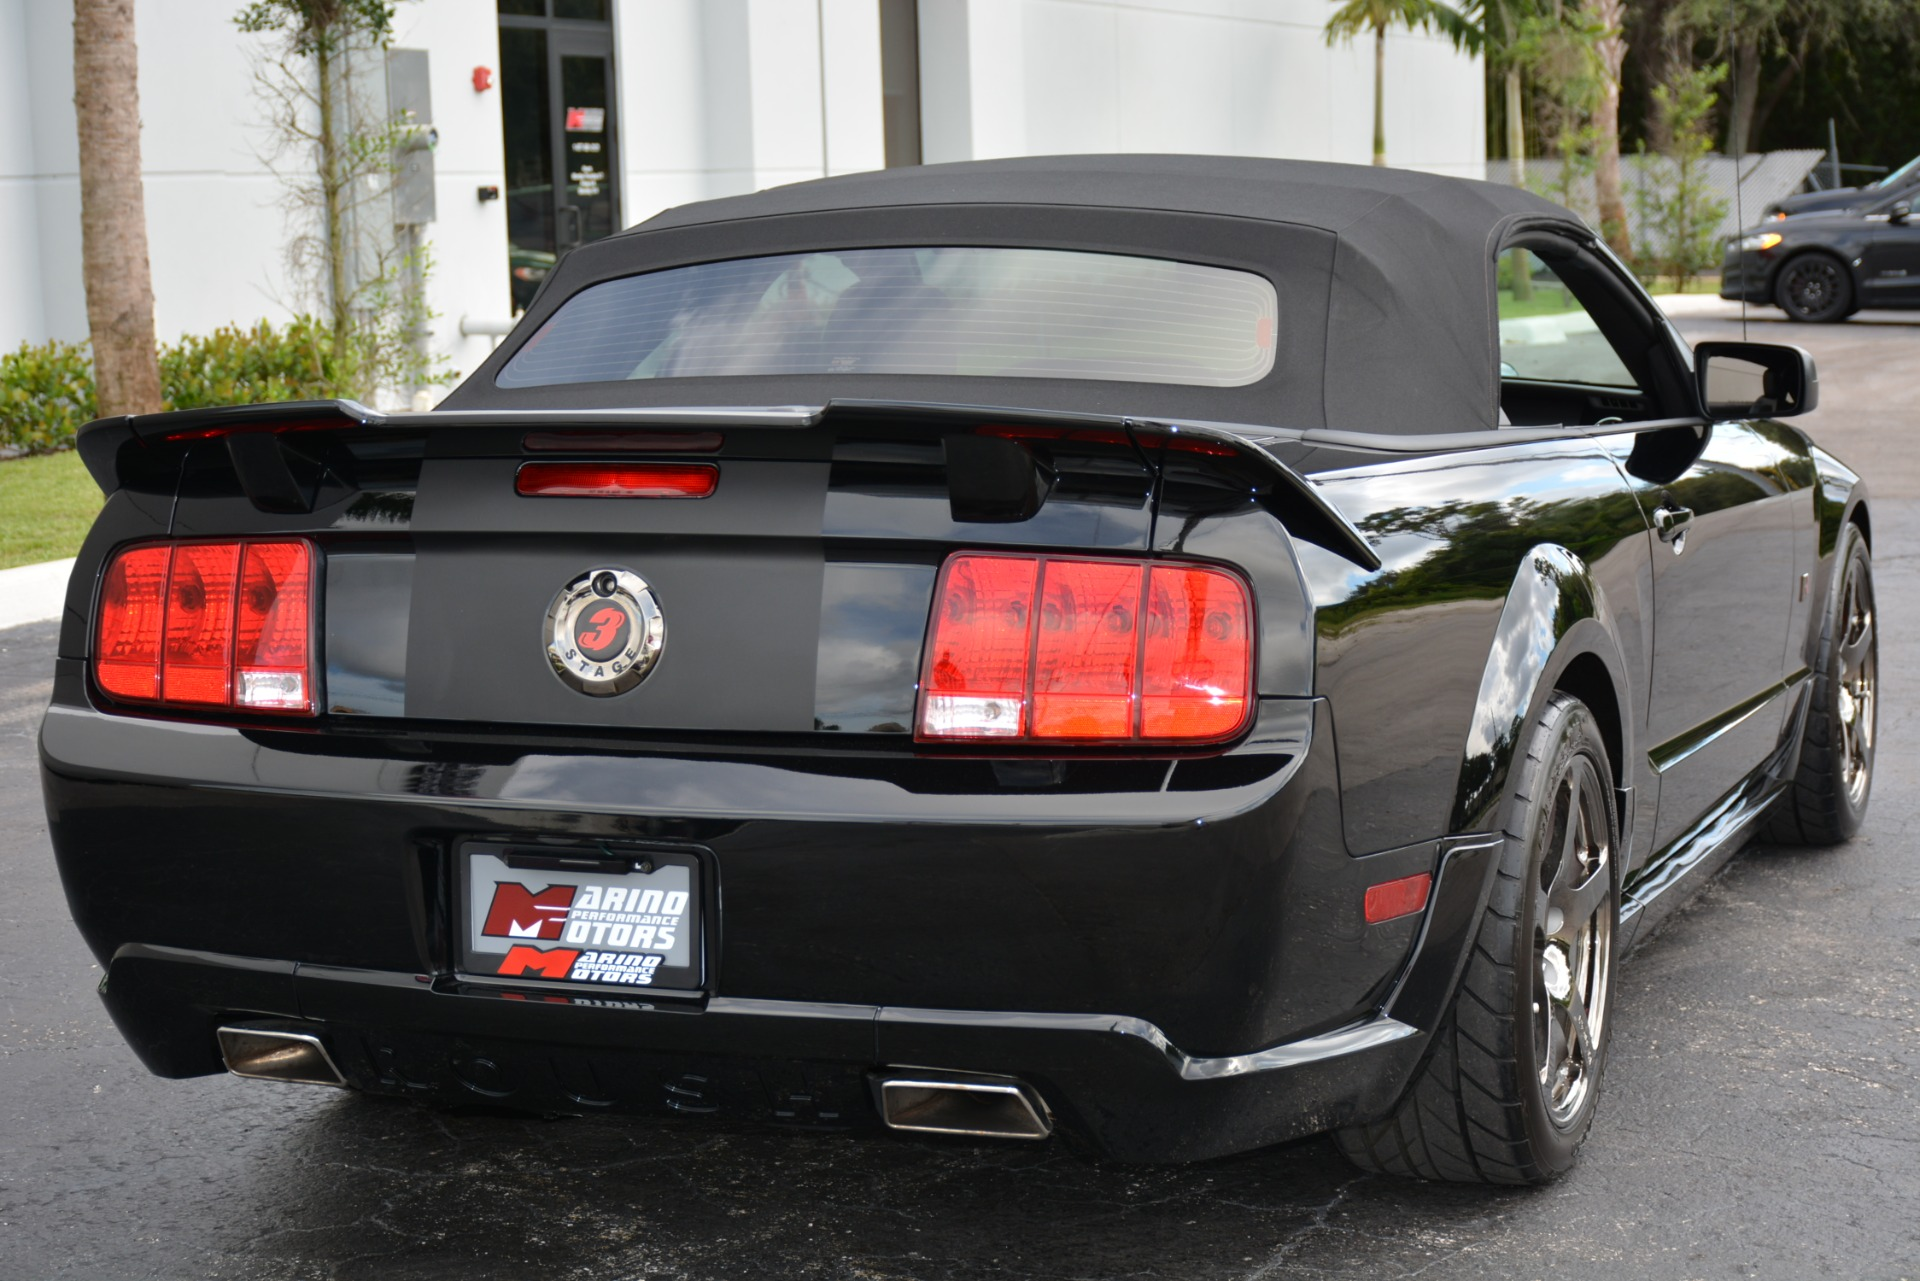 Used-2009-Ford-Mustang-Roush-Stage-3-Blackjack-Convertible-GT-Premium